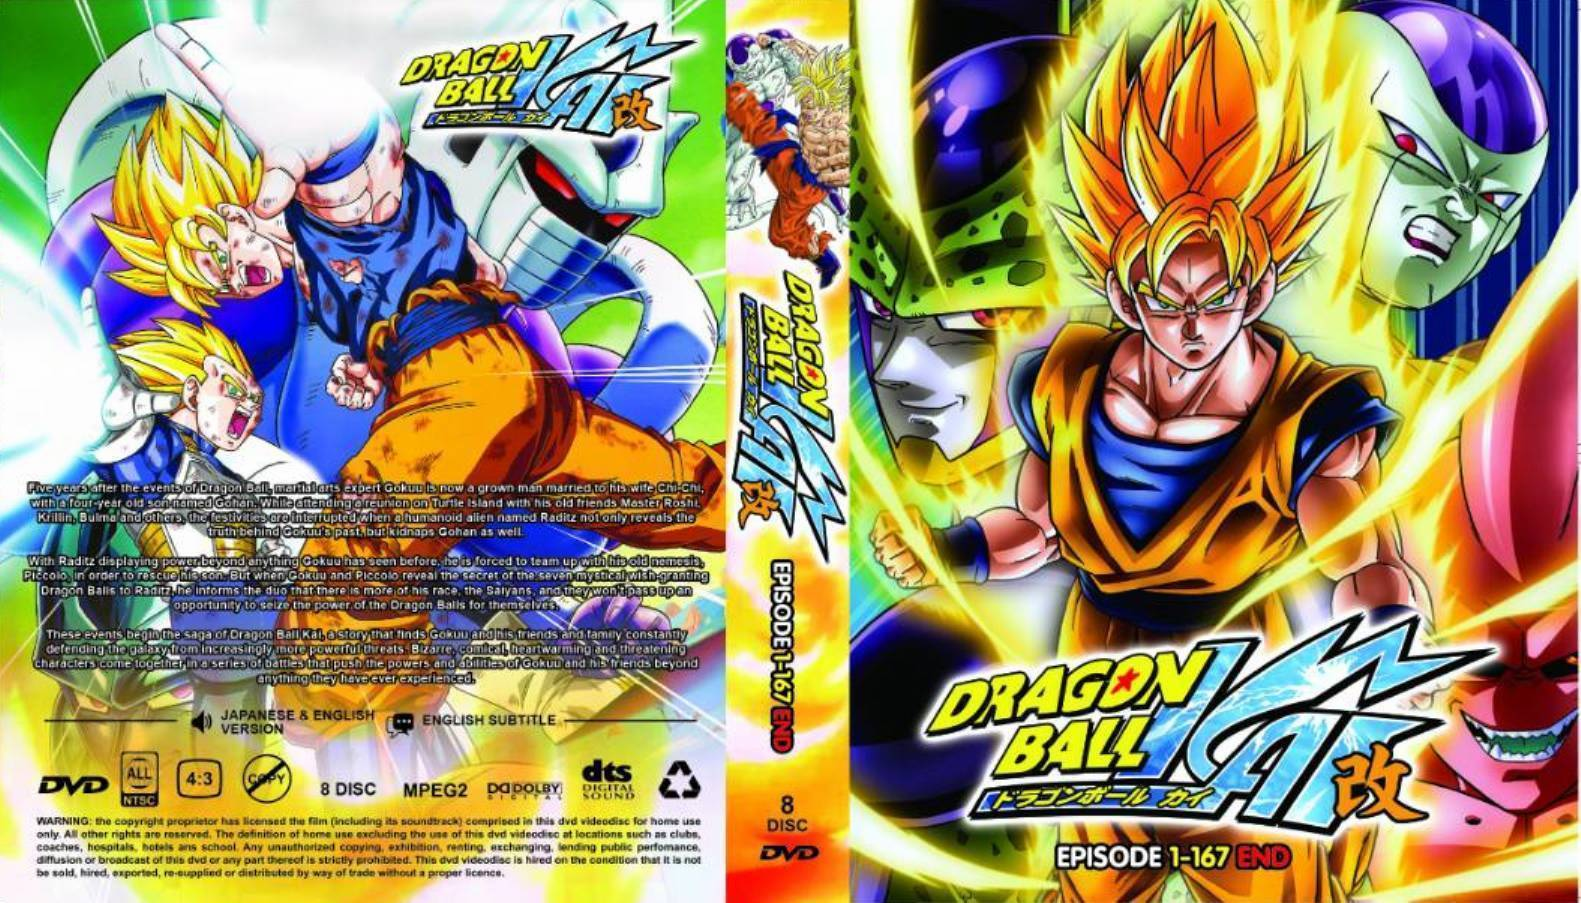 Dragon Ball Kai Vol 1 - 167 End Complete Box Set  (English Dubbed)